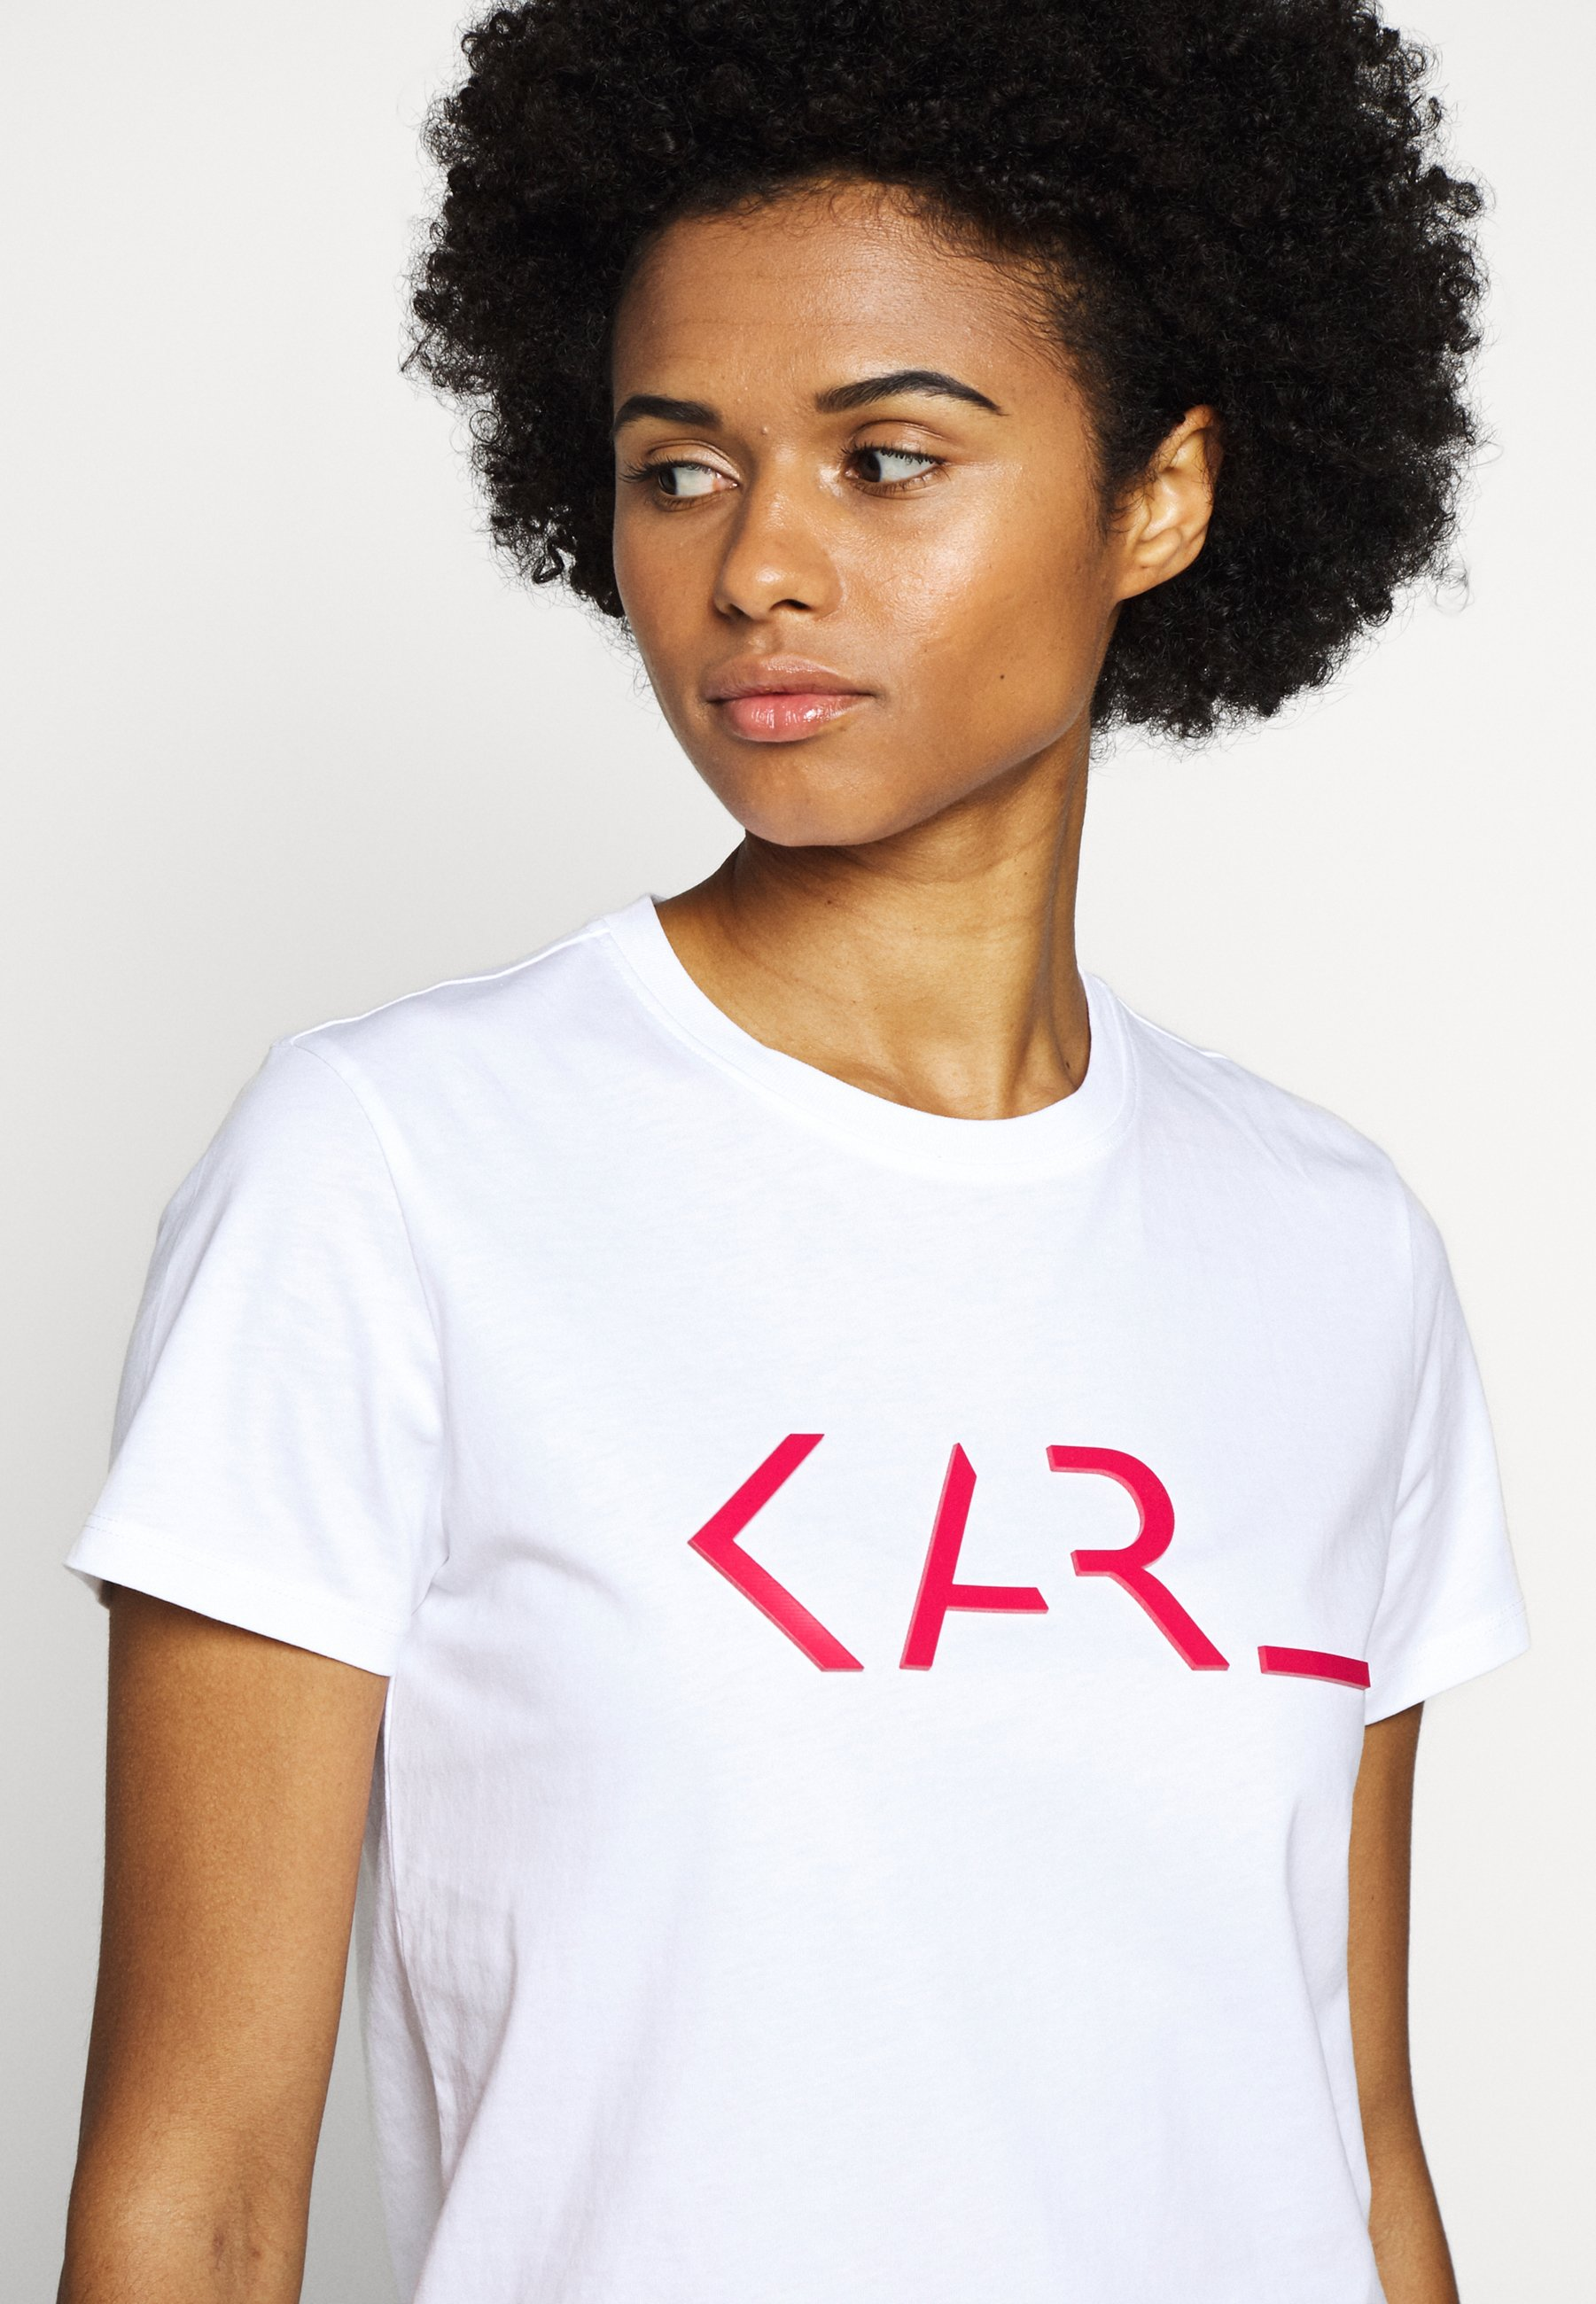 Up To Date Women's Clothing KARL LAGERFELD LEGEND LOGO Print T-shirt white xvclH514R